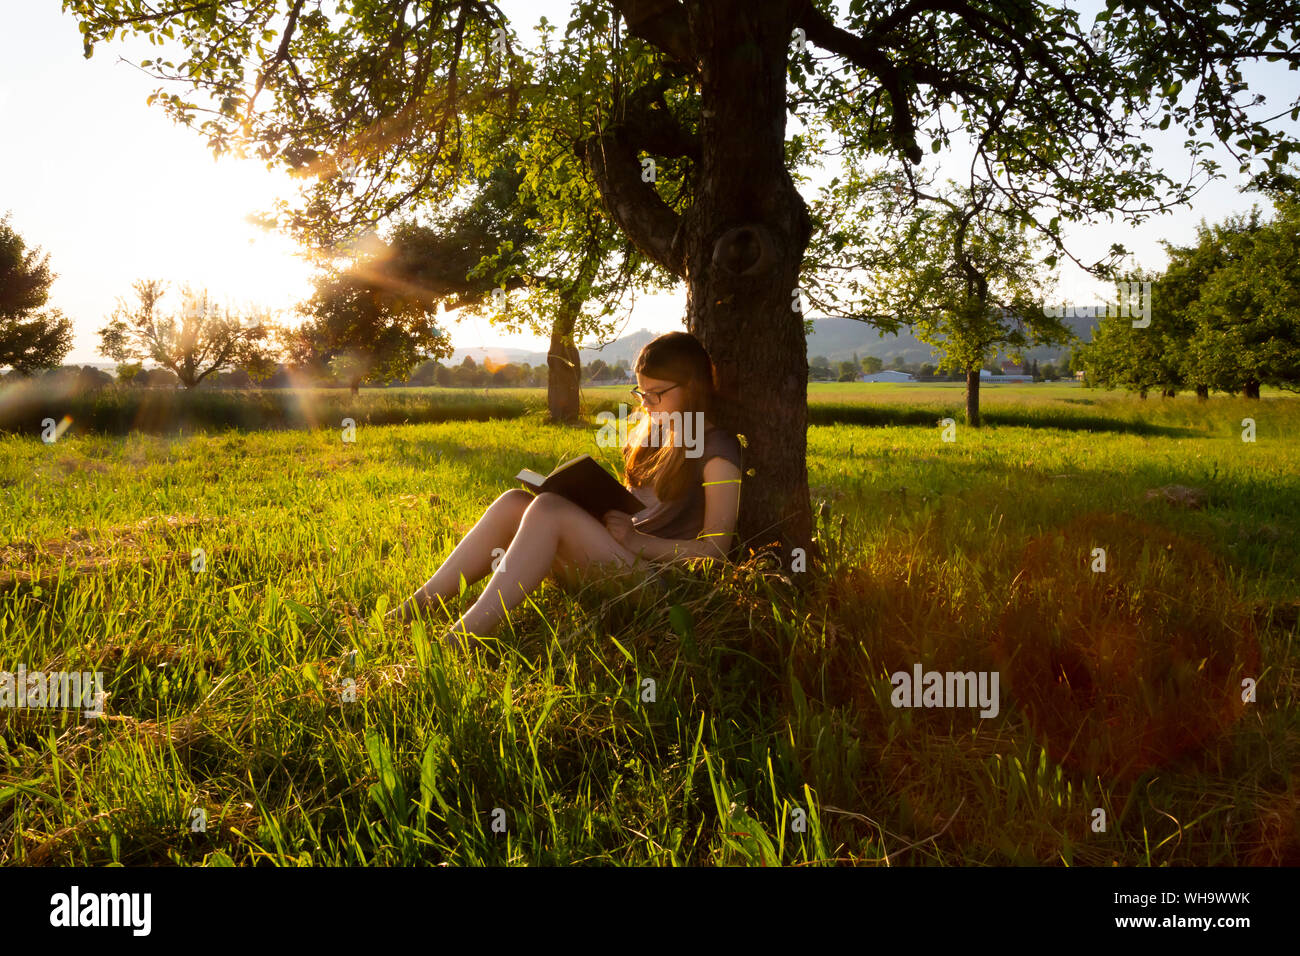 Little girl leaning against tree trunk at sunset reading a book Stock Photo